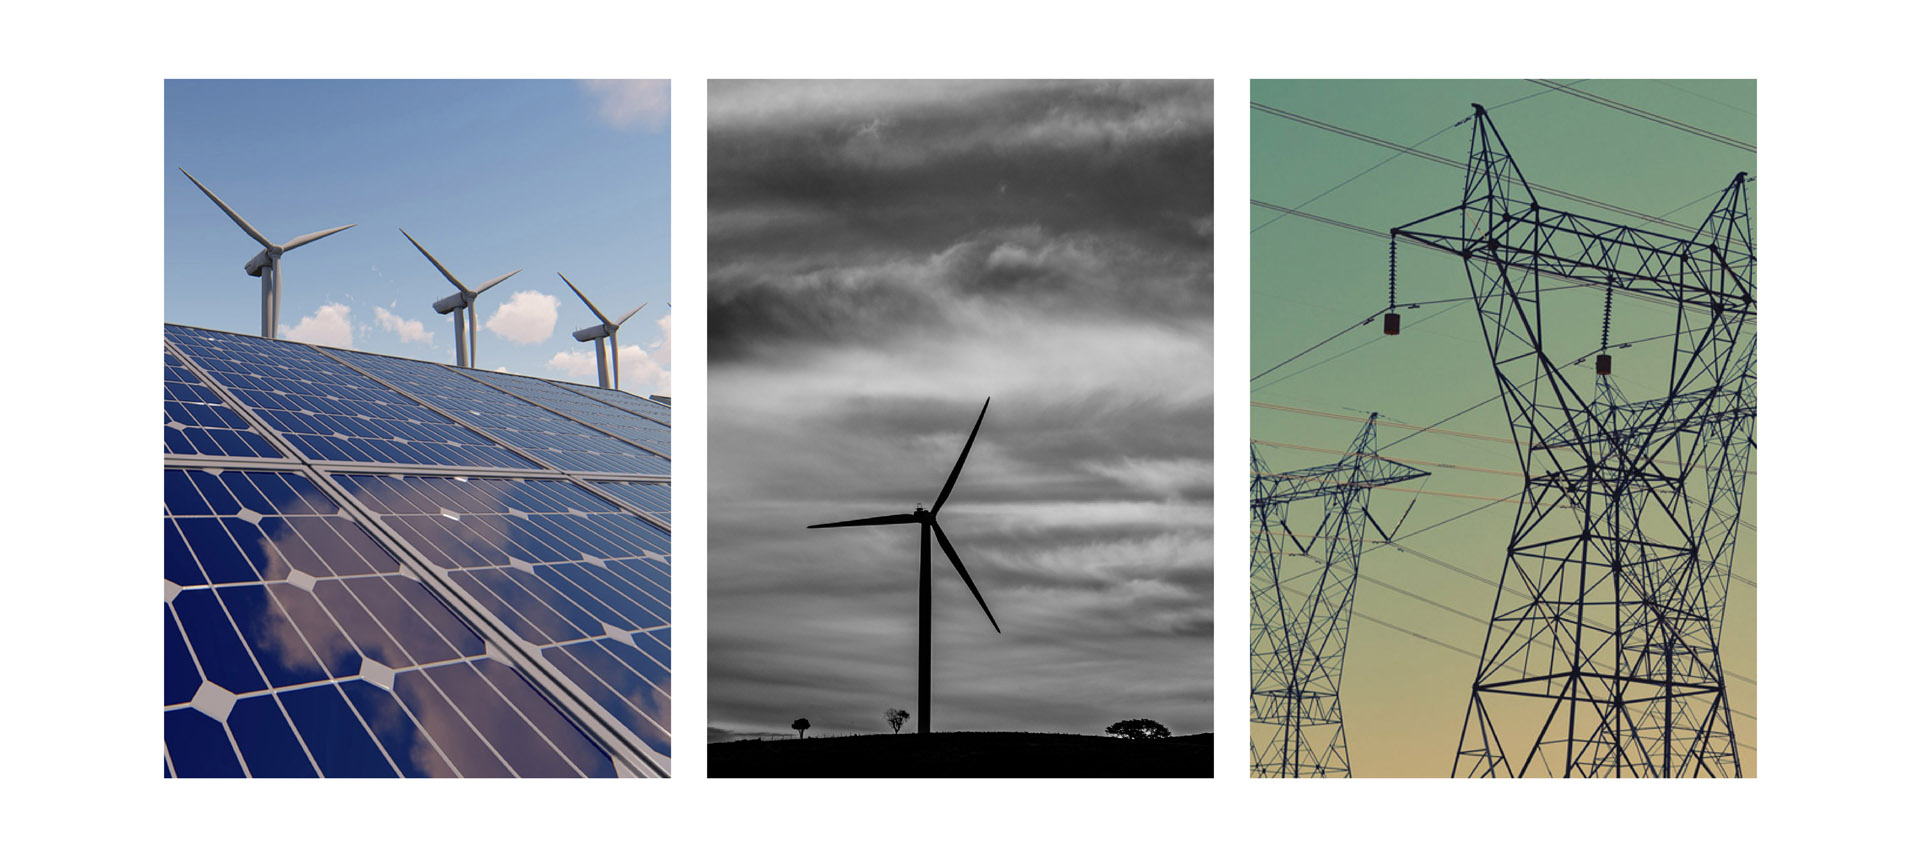 Wind and Solar Farm Images and Power lines transmitting energy